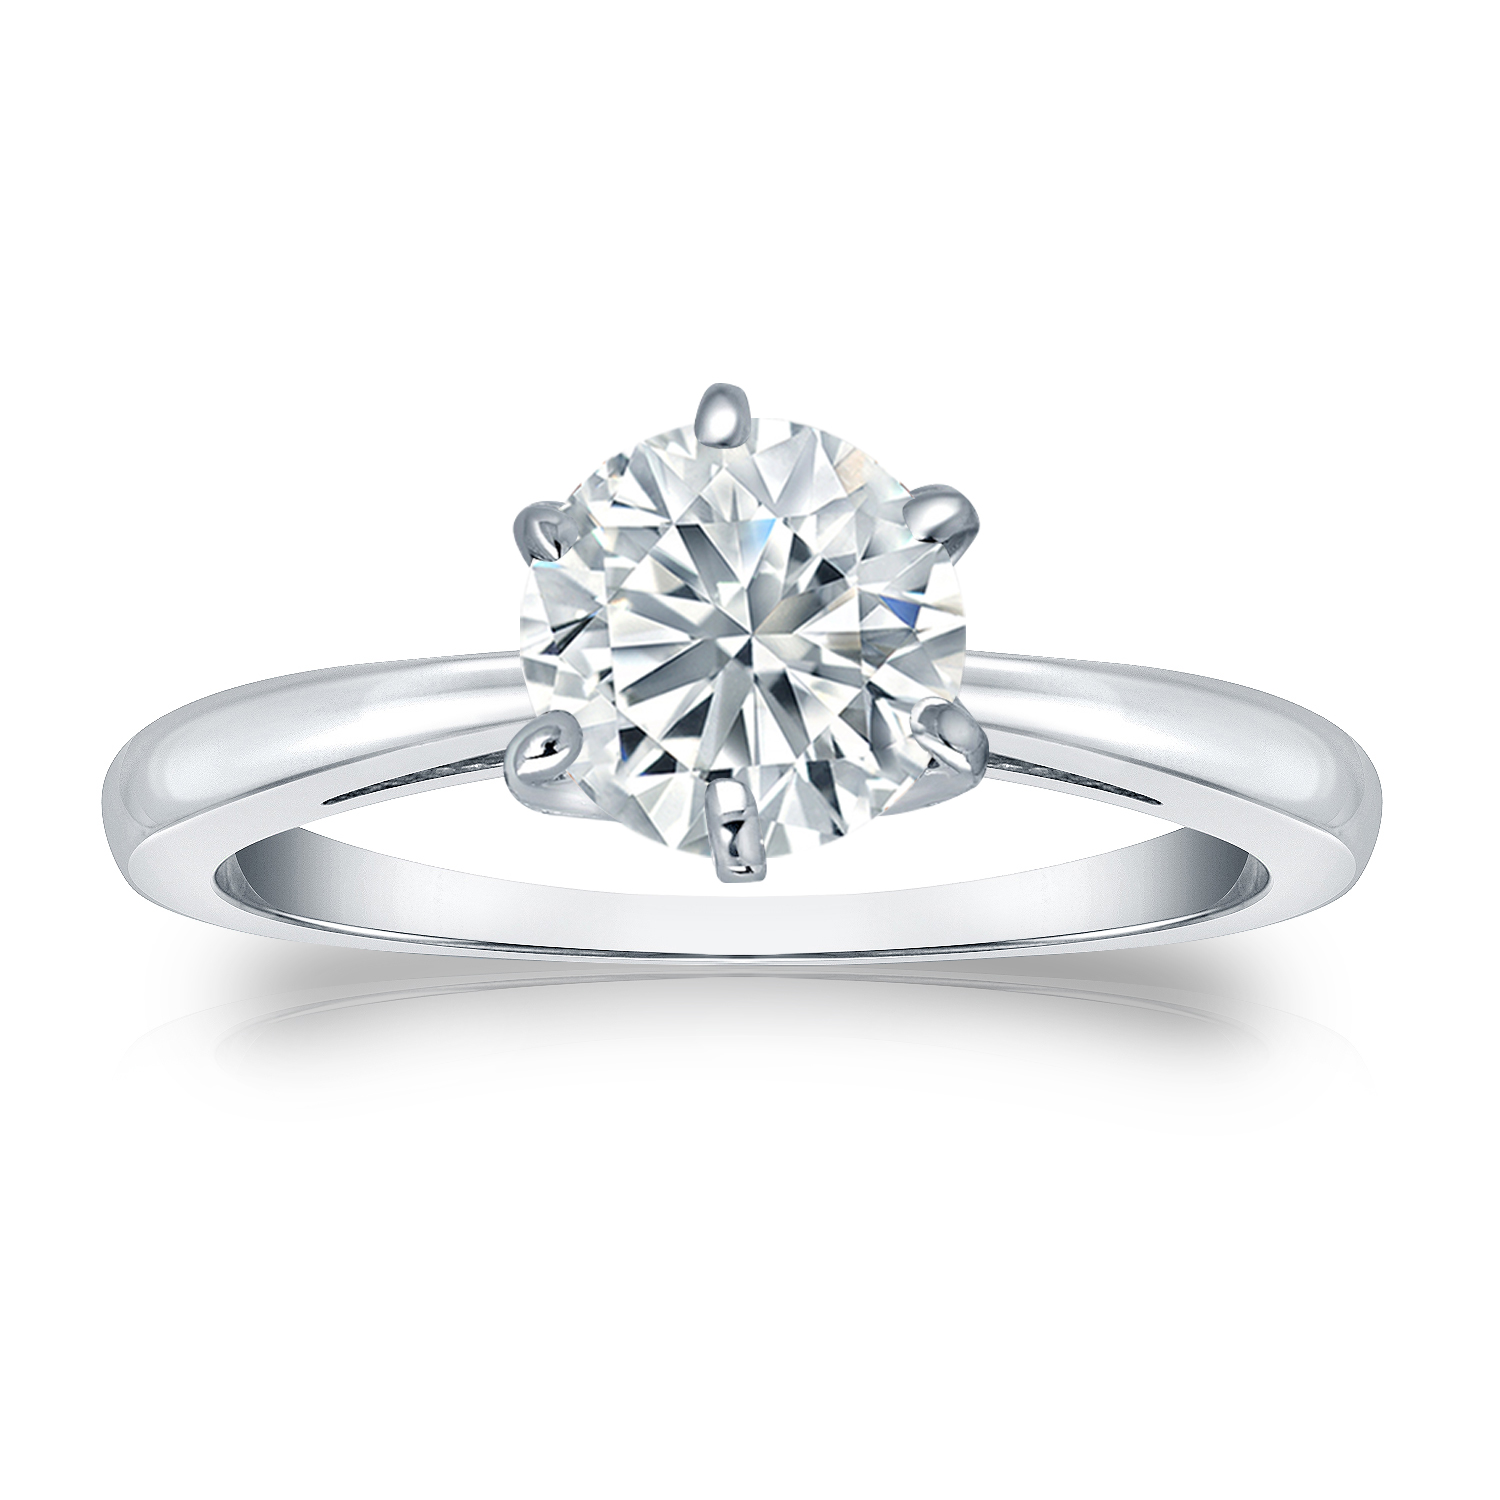 SCARLETT Solitaire Moissanite Engagement Ring In 14K White Gold With 0.50 Carat Round Stone